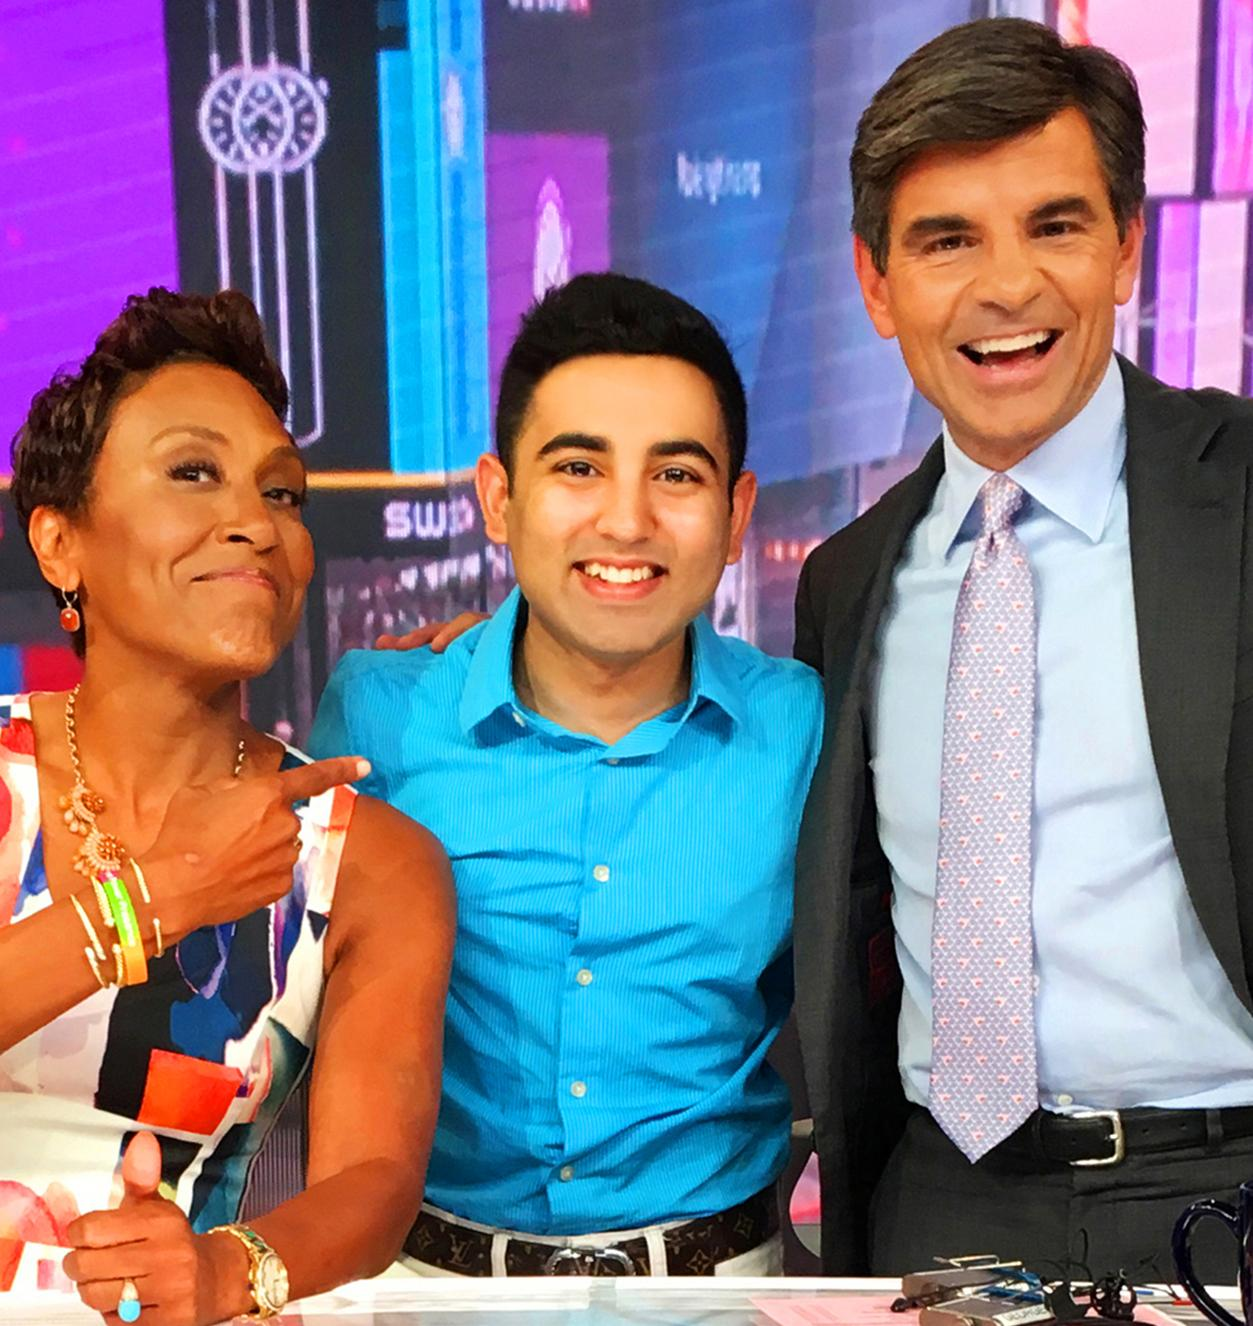 Student Shobhit Jain posing with Good Morning America co-hosts